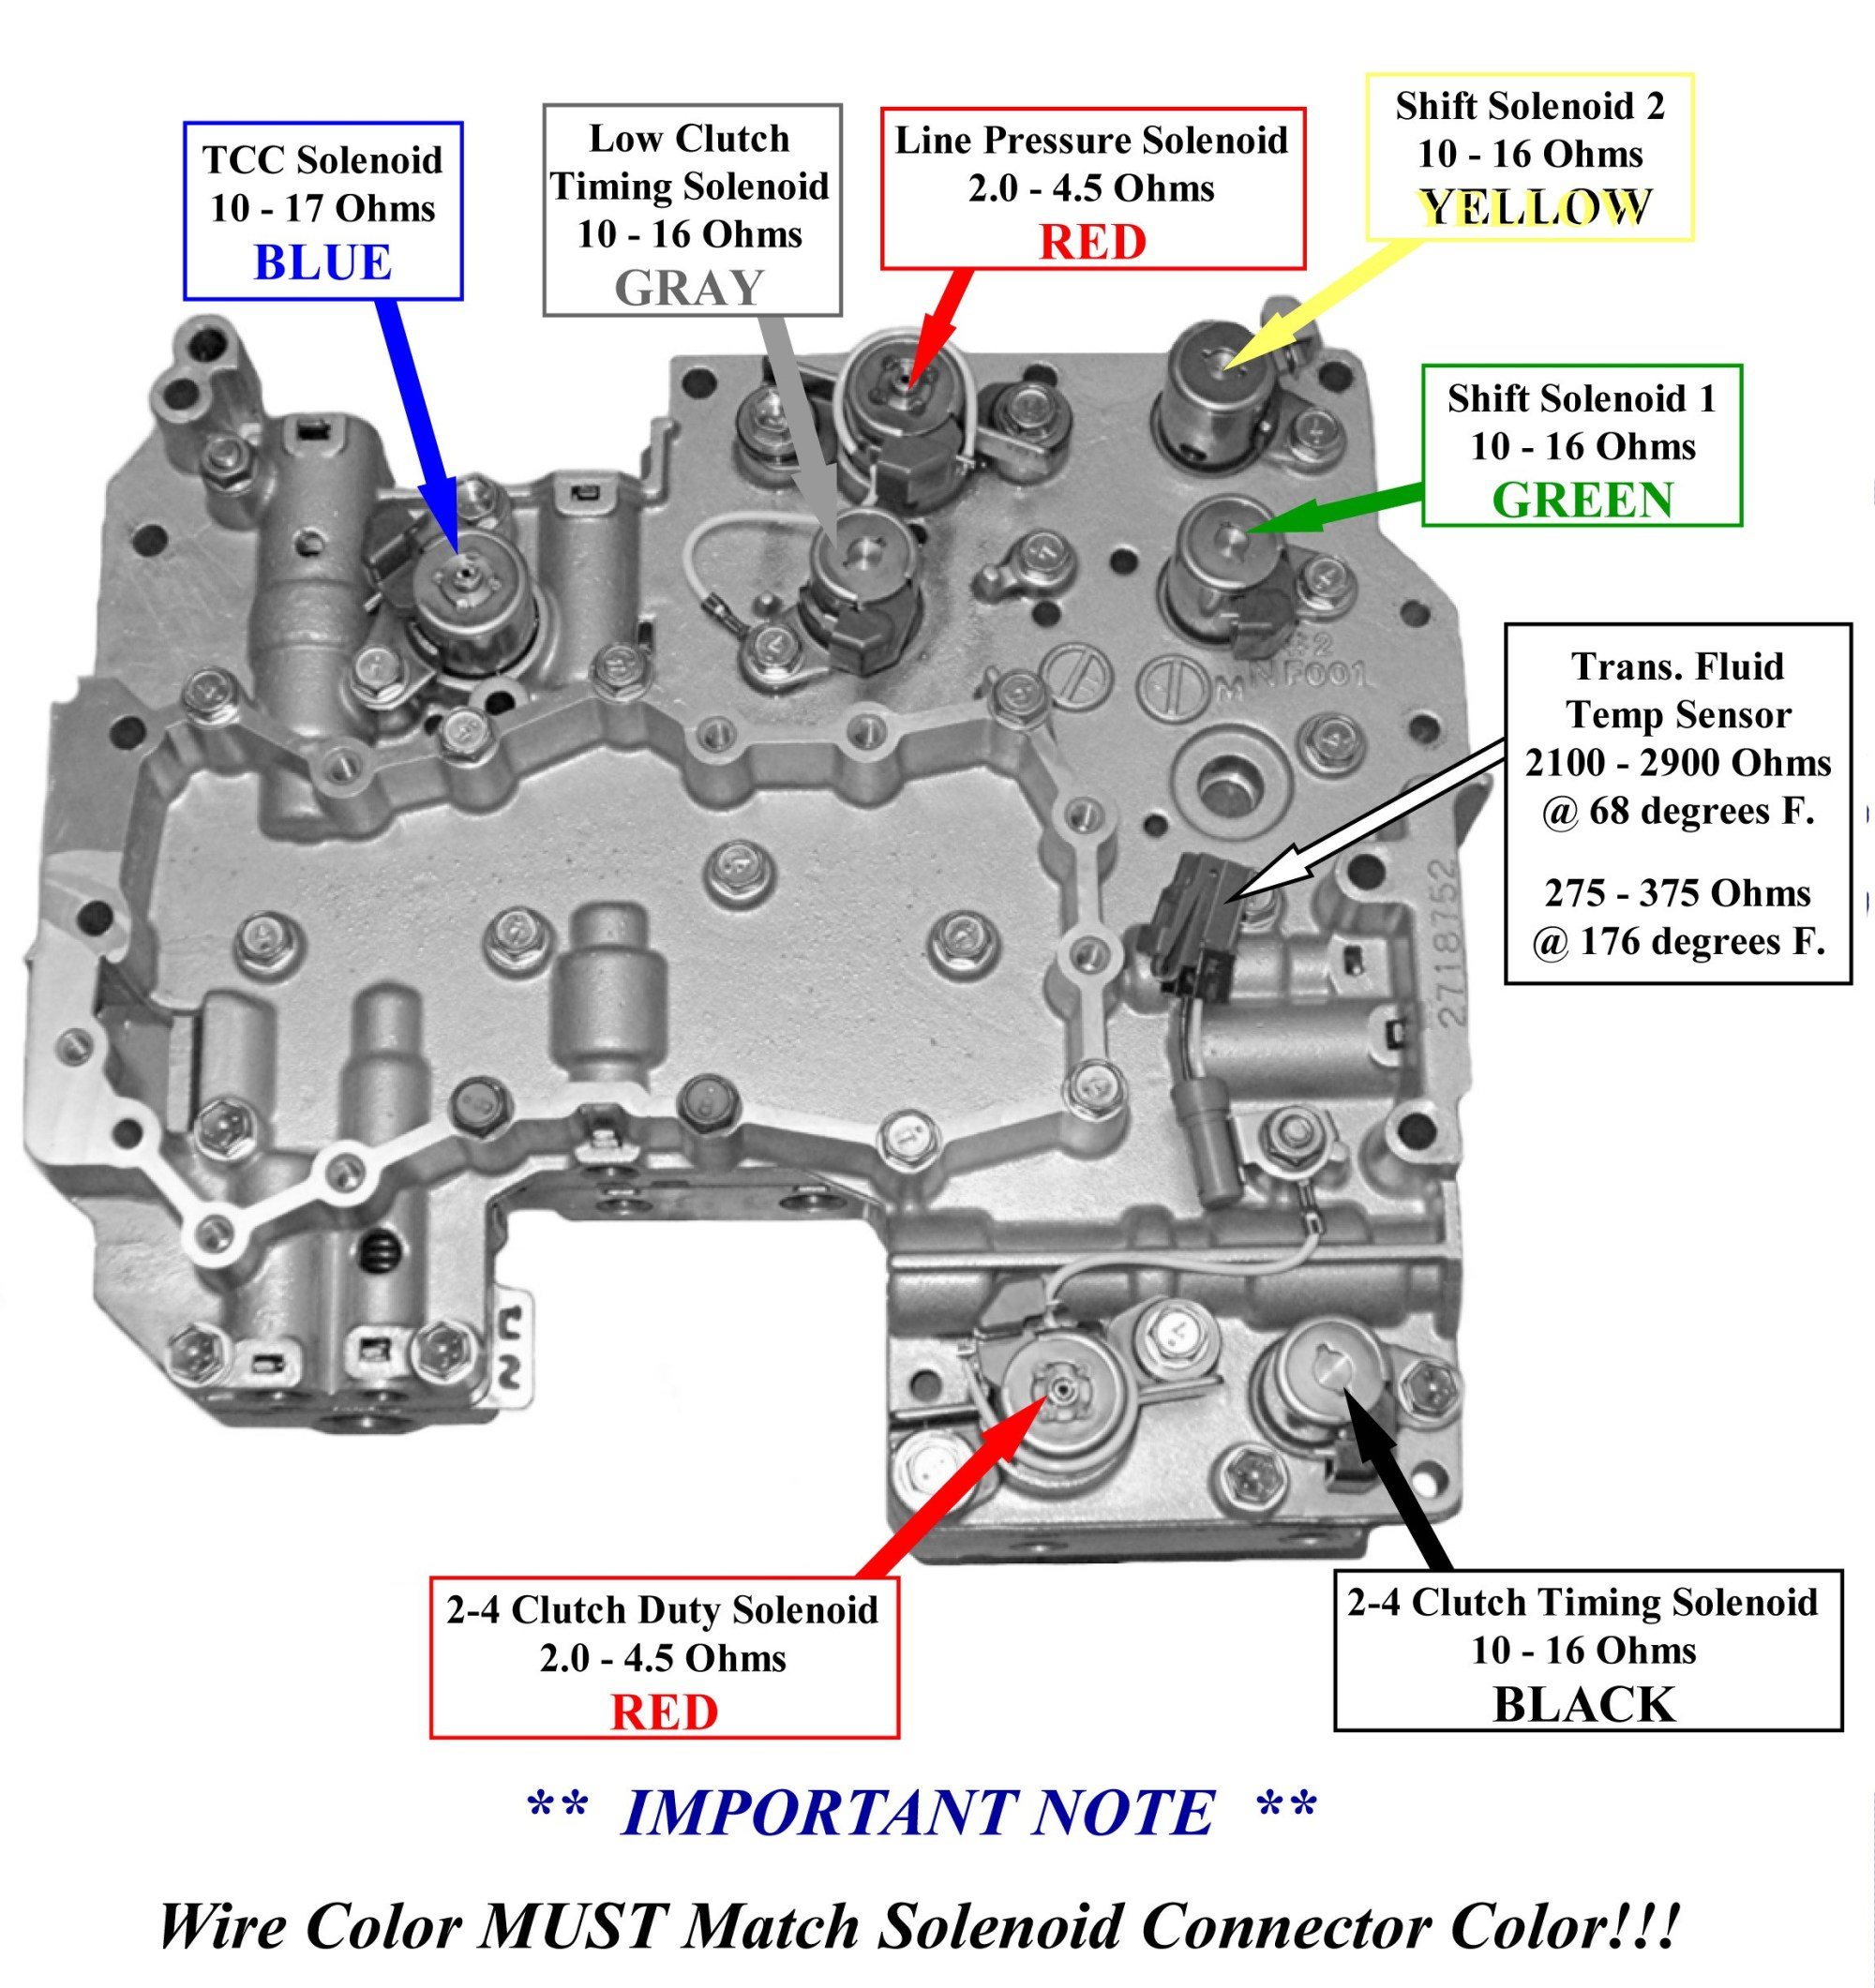 hight resolution of 2002 subaru outback parts diagram my wiring diagram 42rle valve body diagram 4l30e wiring diagram